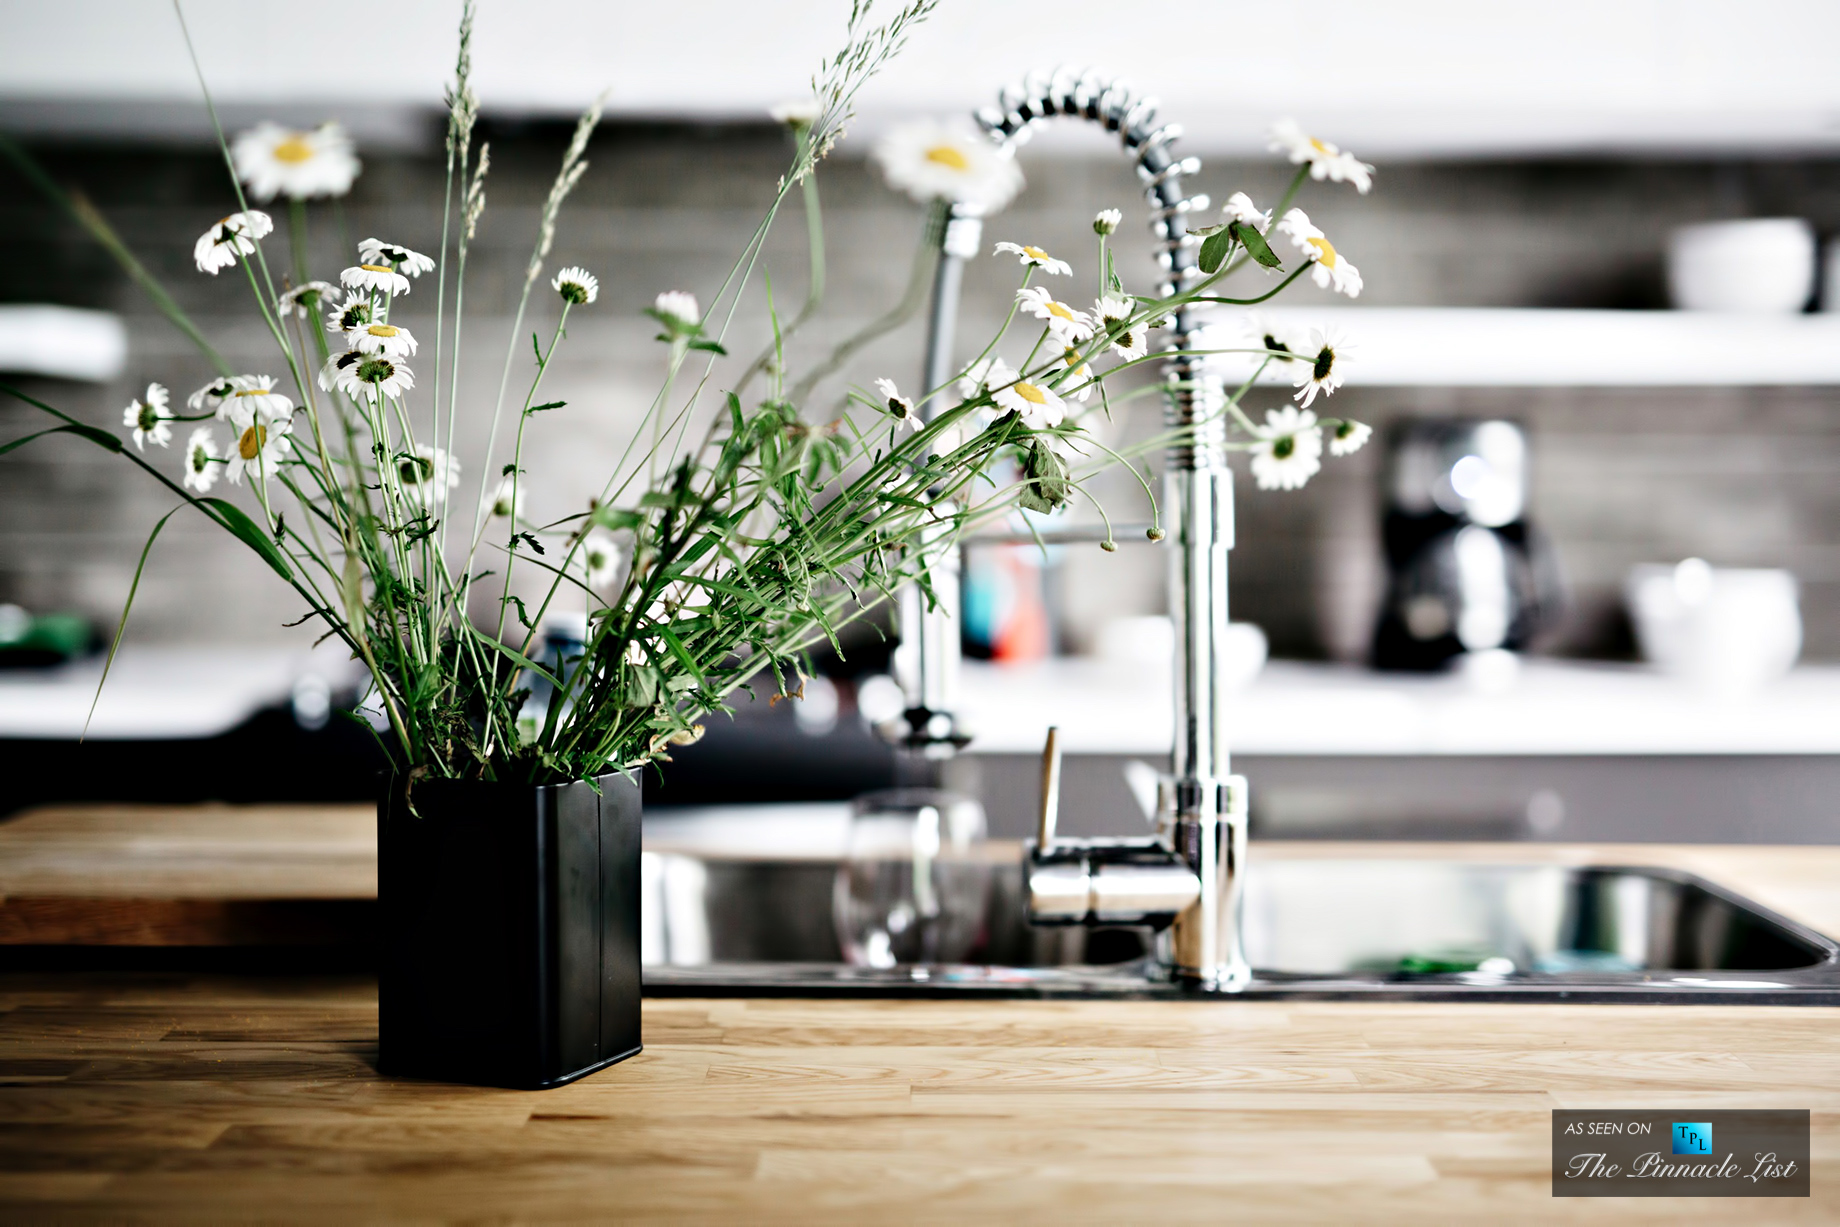 Make Use of Flowers - Home Design and Decor - 5 Tips for Creating a Beautiful Kitchen Space